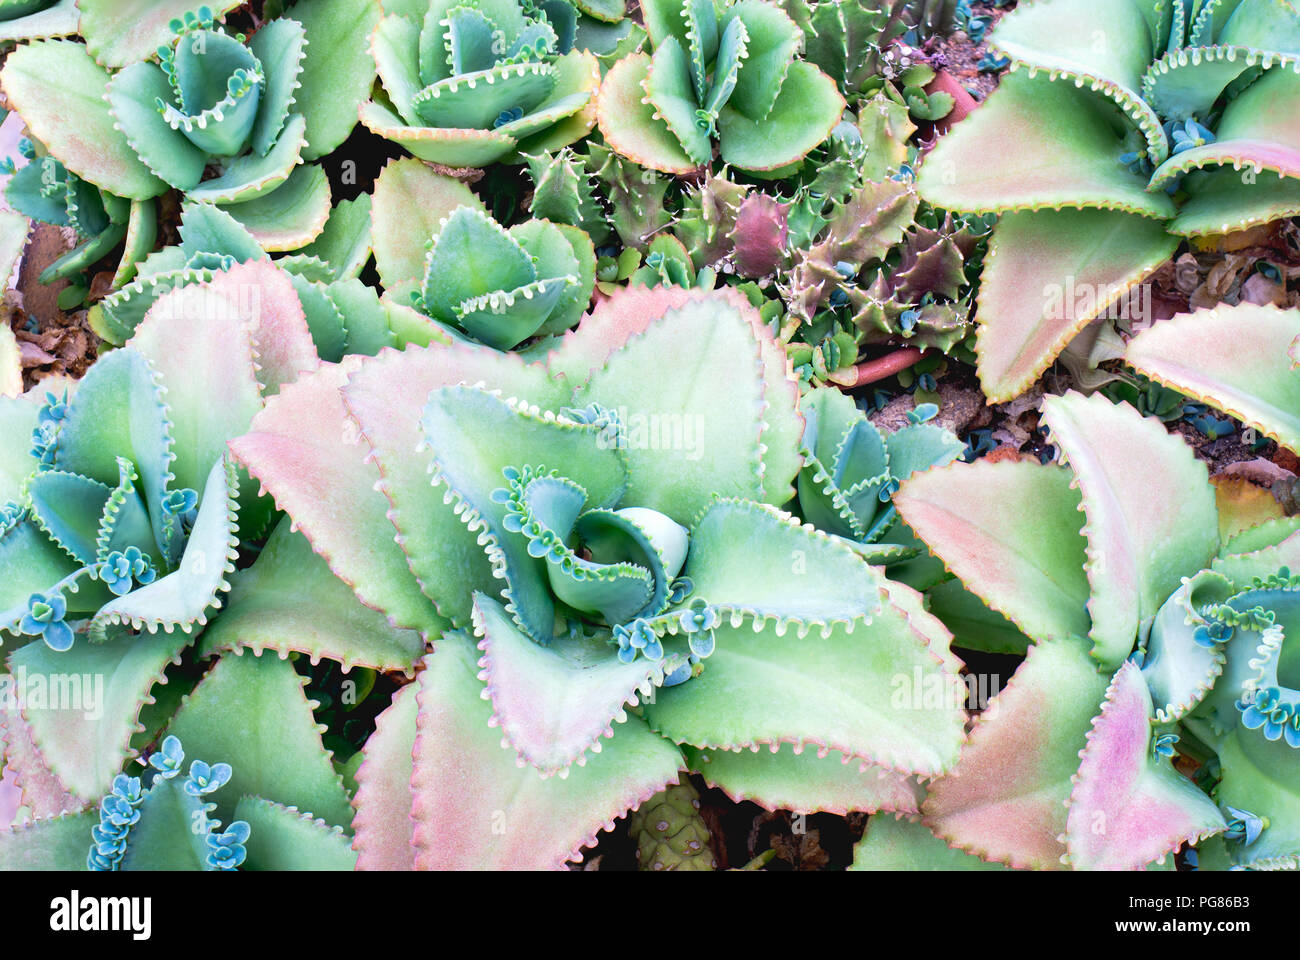 Close Up Of Colorful Succulent Plant Green Nature Wallpaper Background Stock Photo Alamy